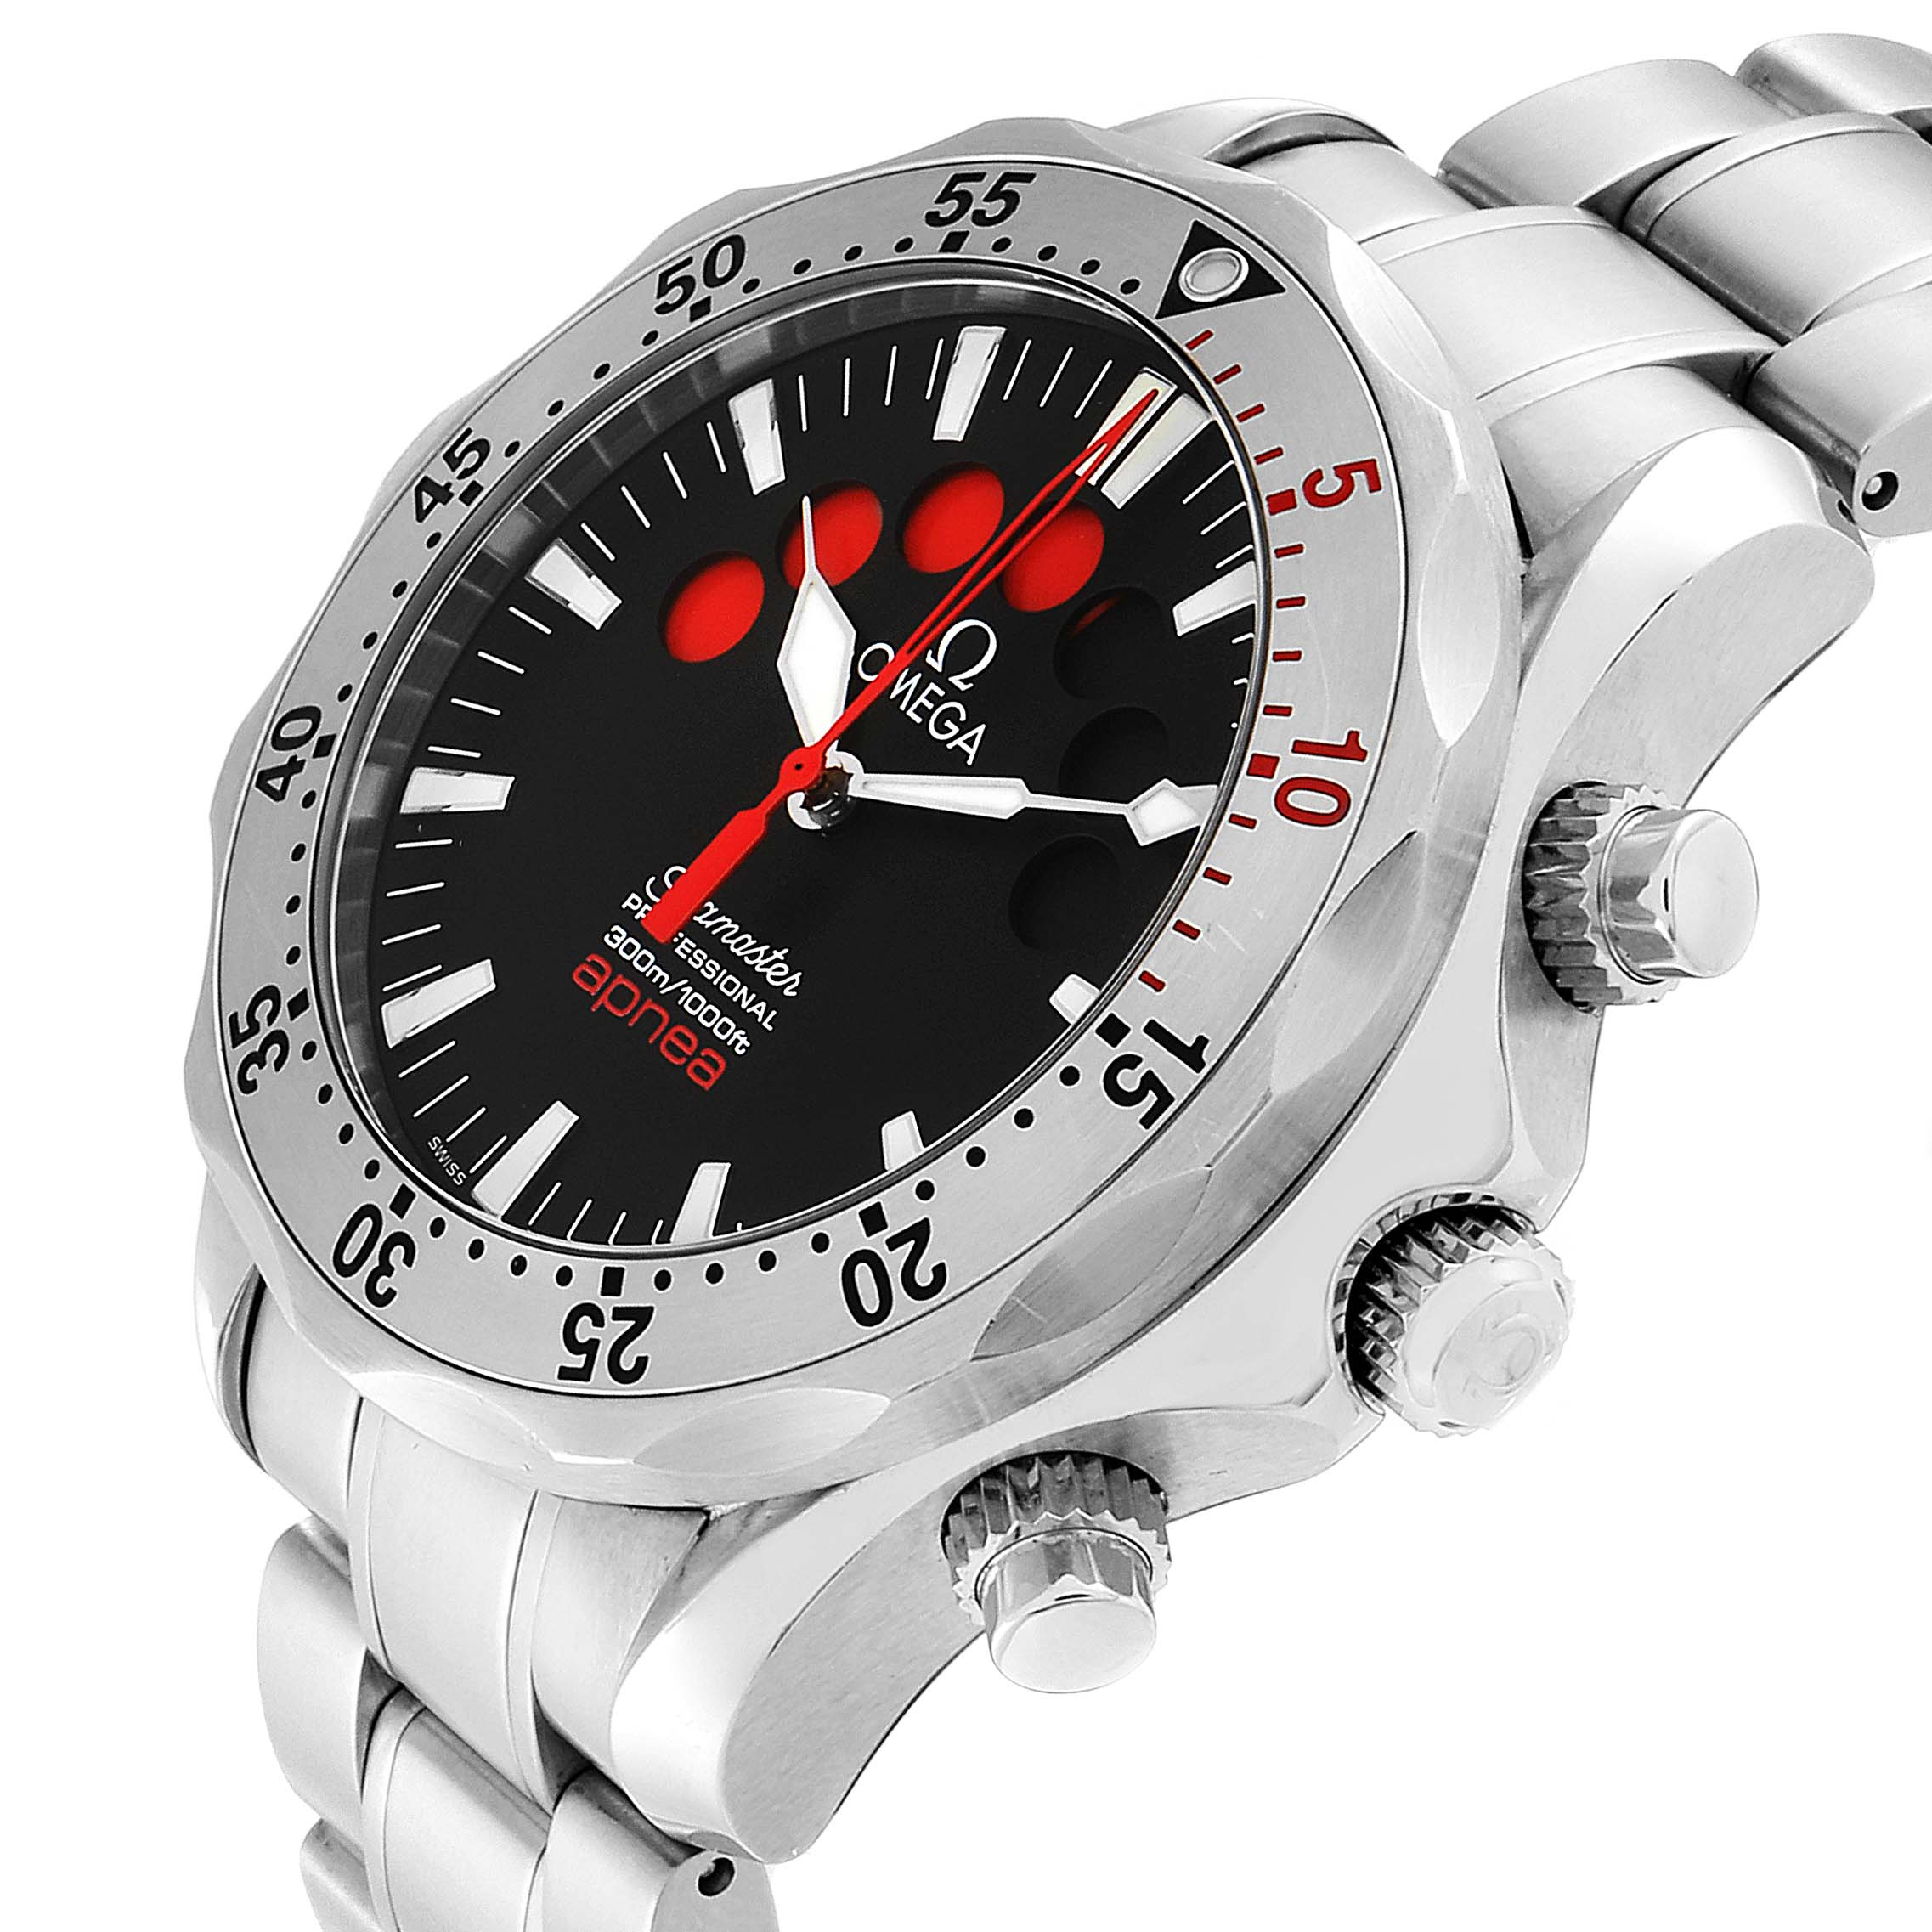 Omega Seamaster Apnea Jacques Mayol Black Dial Mens Watch 2595.50.00 SwissWatchExpo